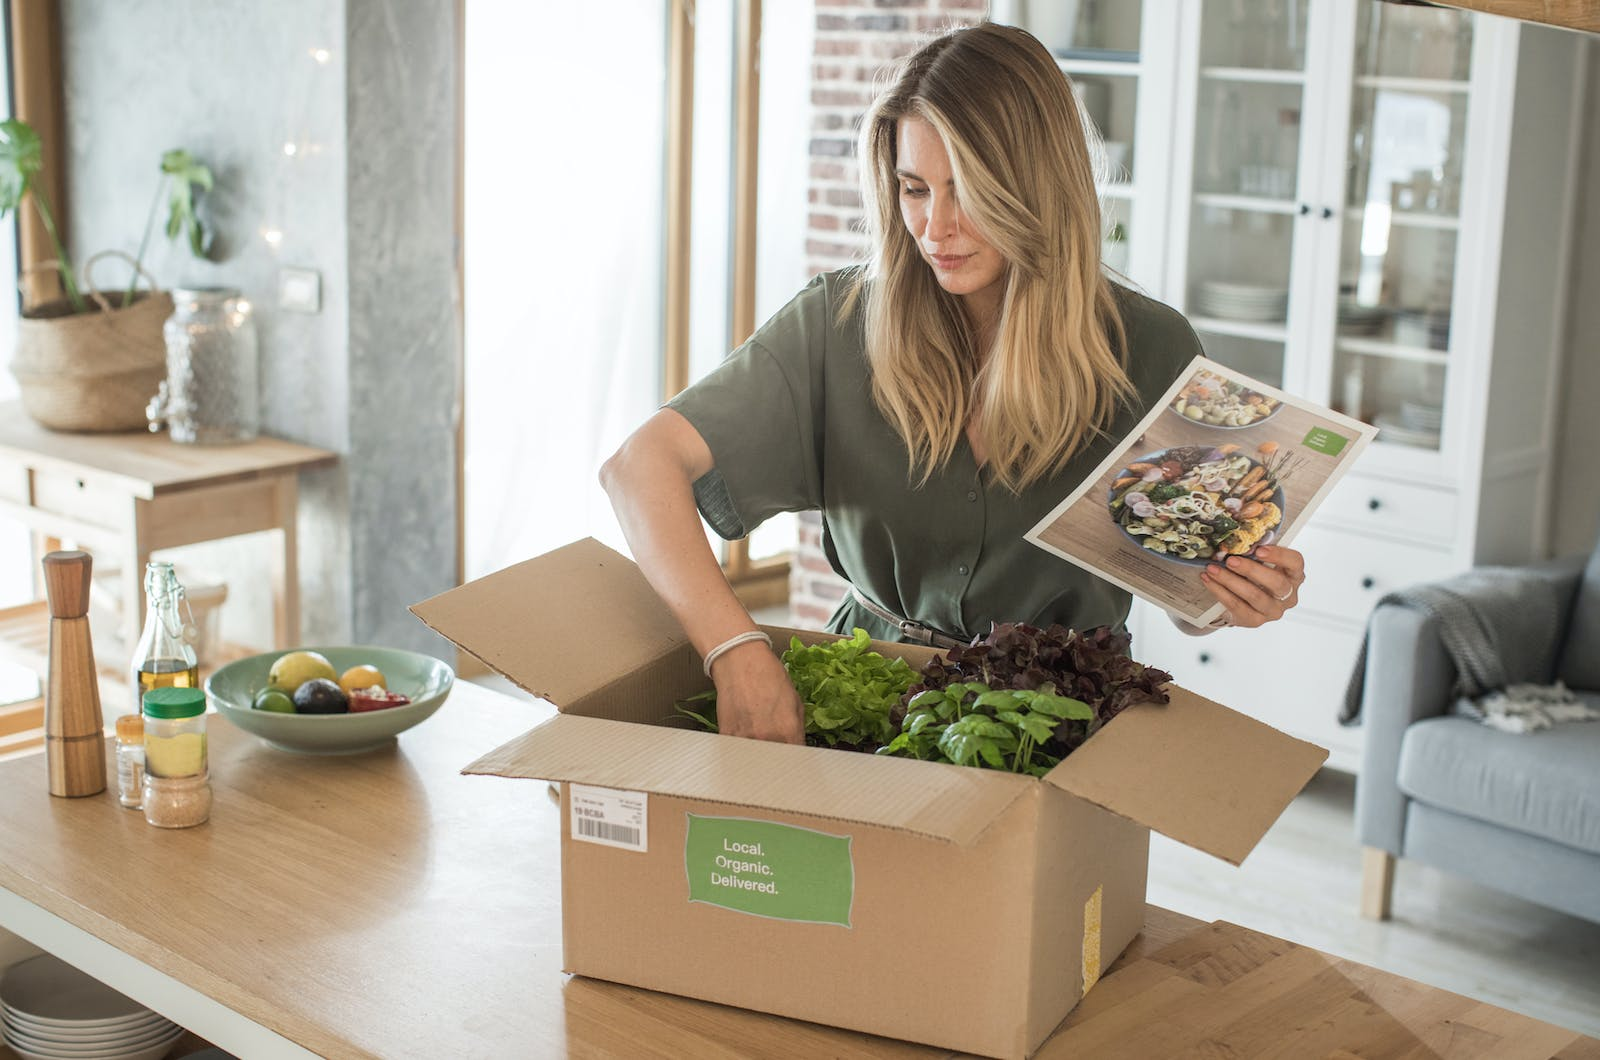 Top Keto Meal Delivery Services Meals And Meal Kits Diet Doctor